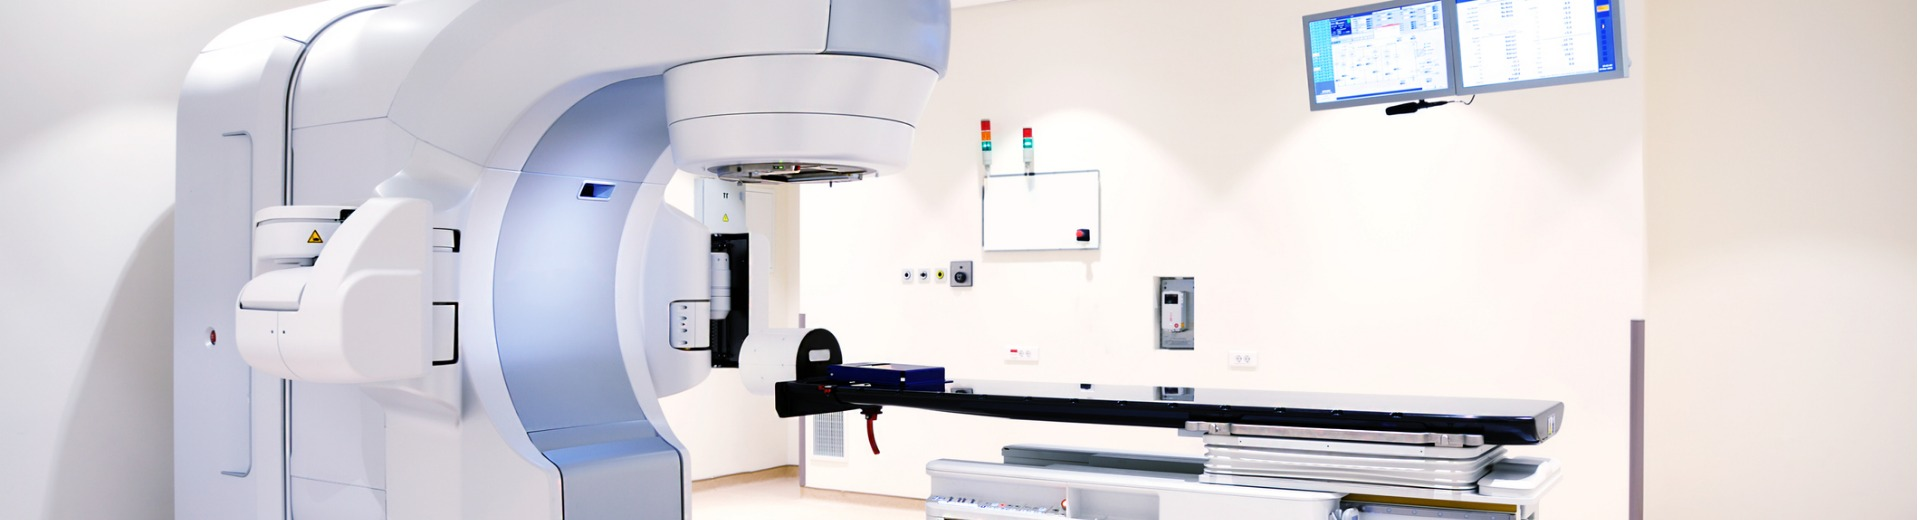 Clinical linear accelerator